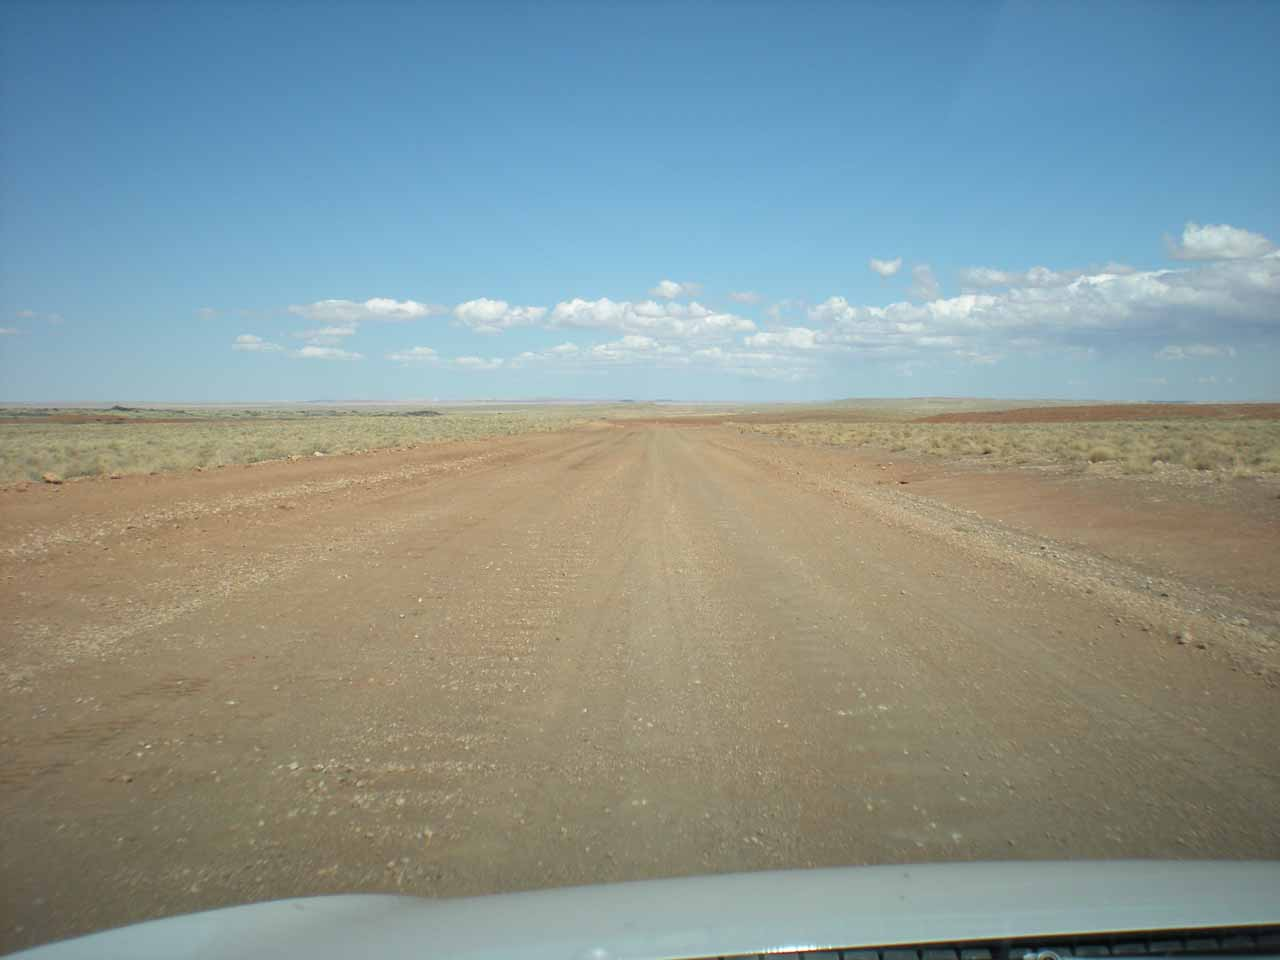 Road through nothingness